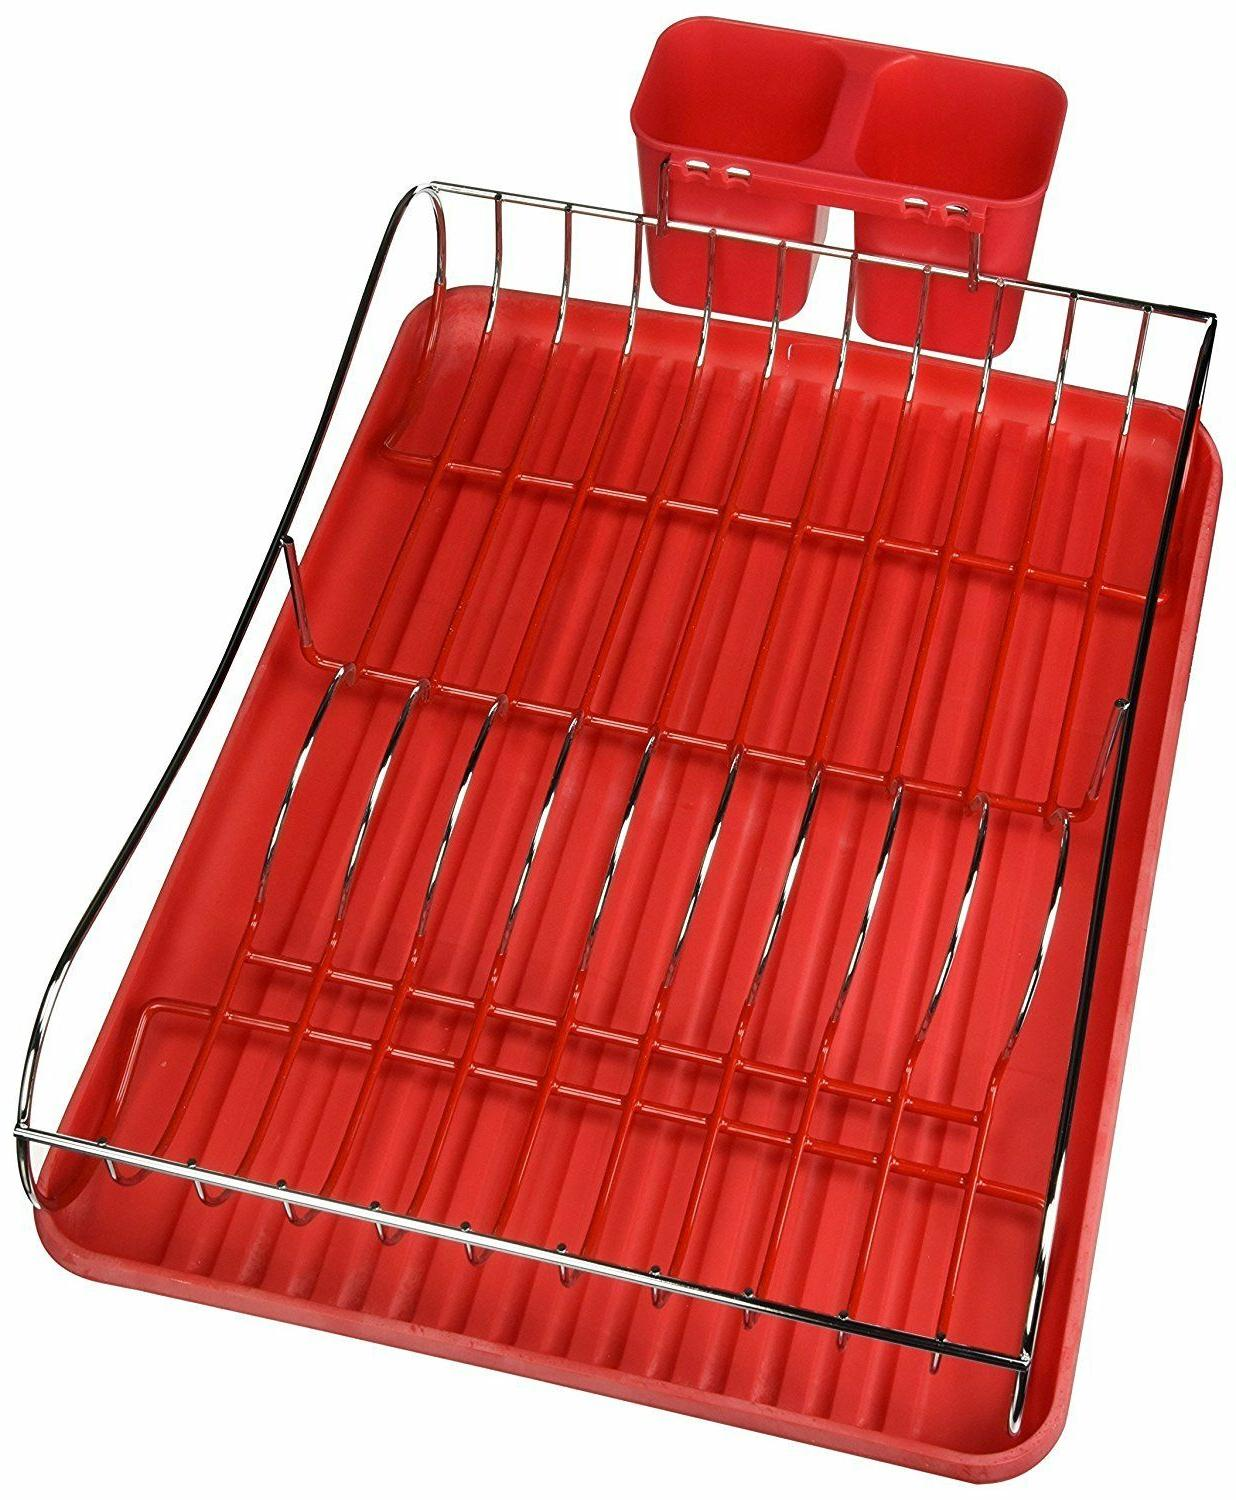 Chrome Dish Rack With Tray, Holder,Red/Green/White